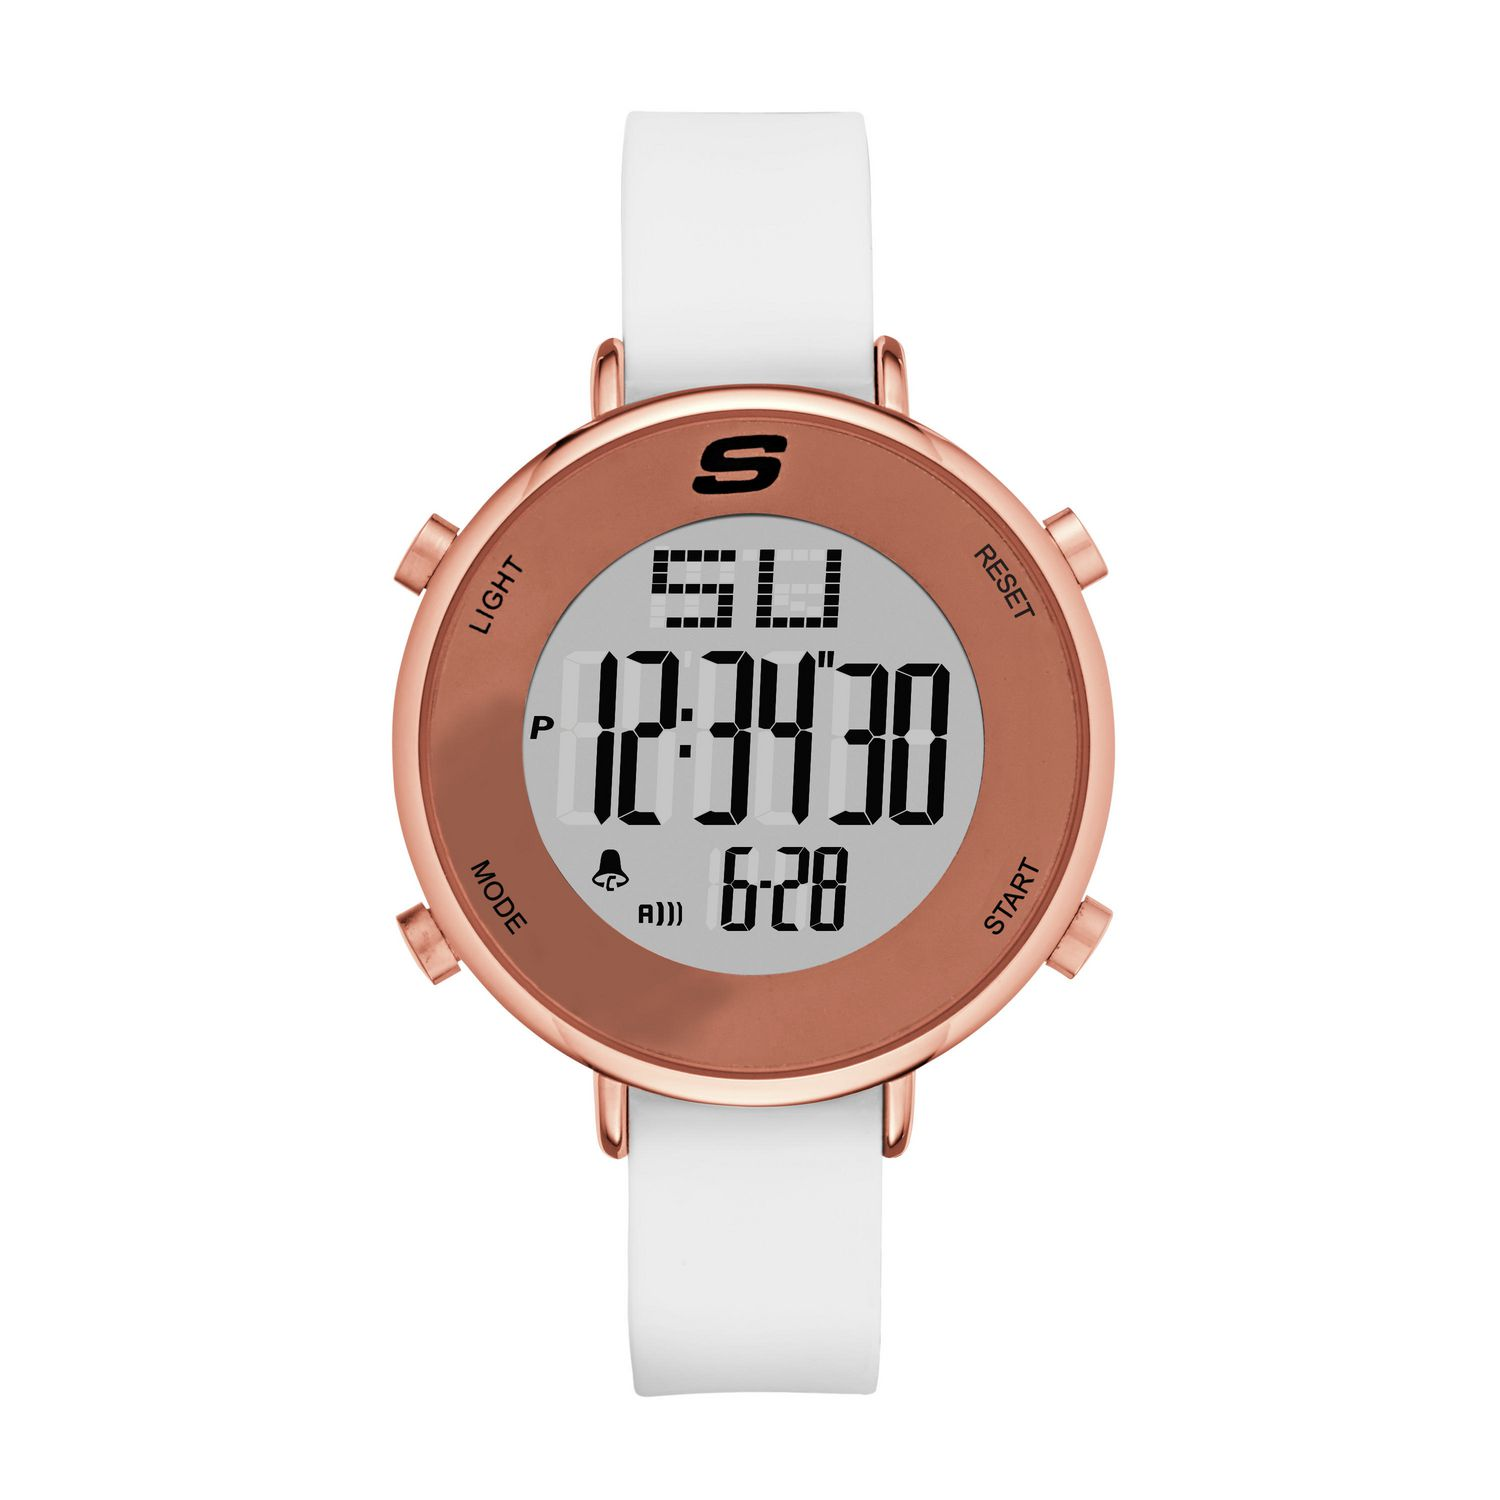 e4e96f85c82 Skechers Women s Magnolia Digital Chronograph Watch - image 1 of 1 zoomed  image